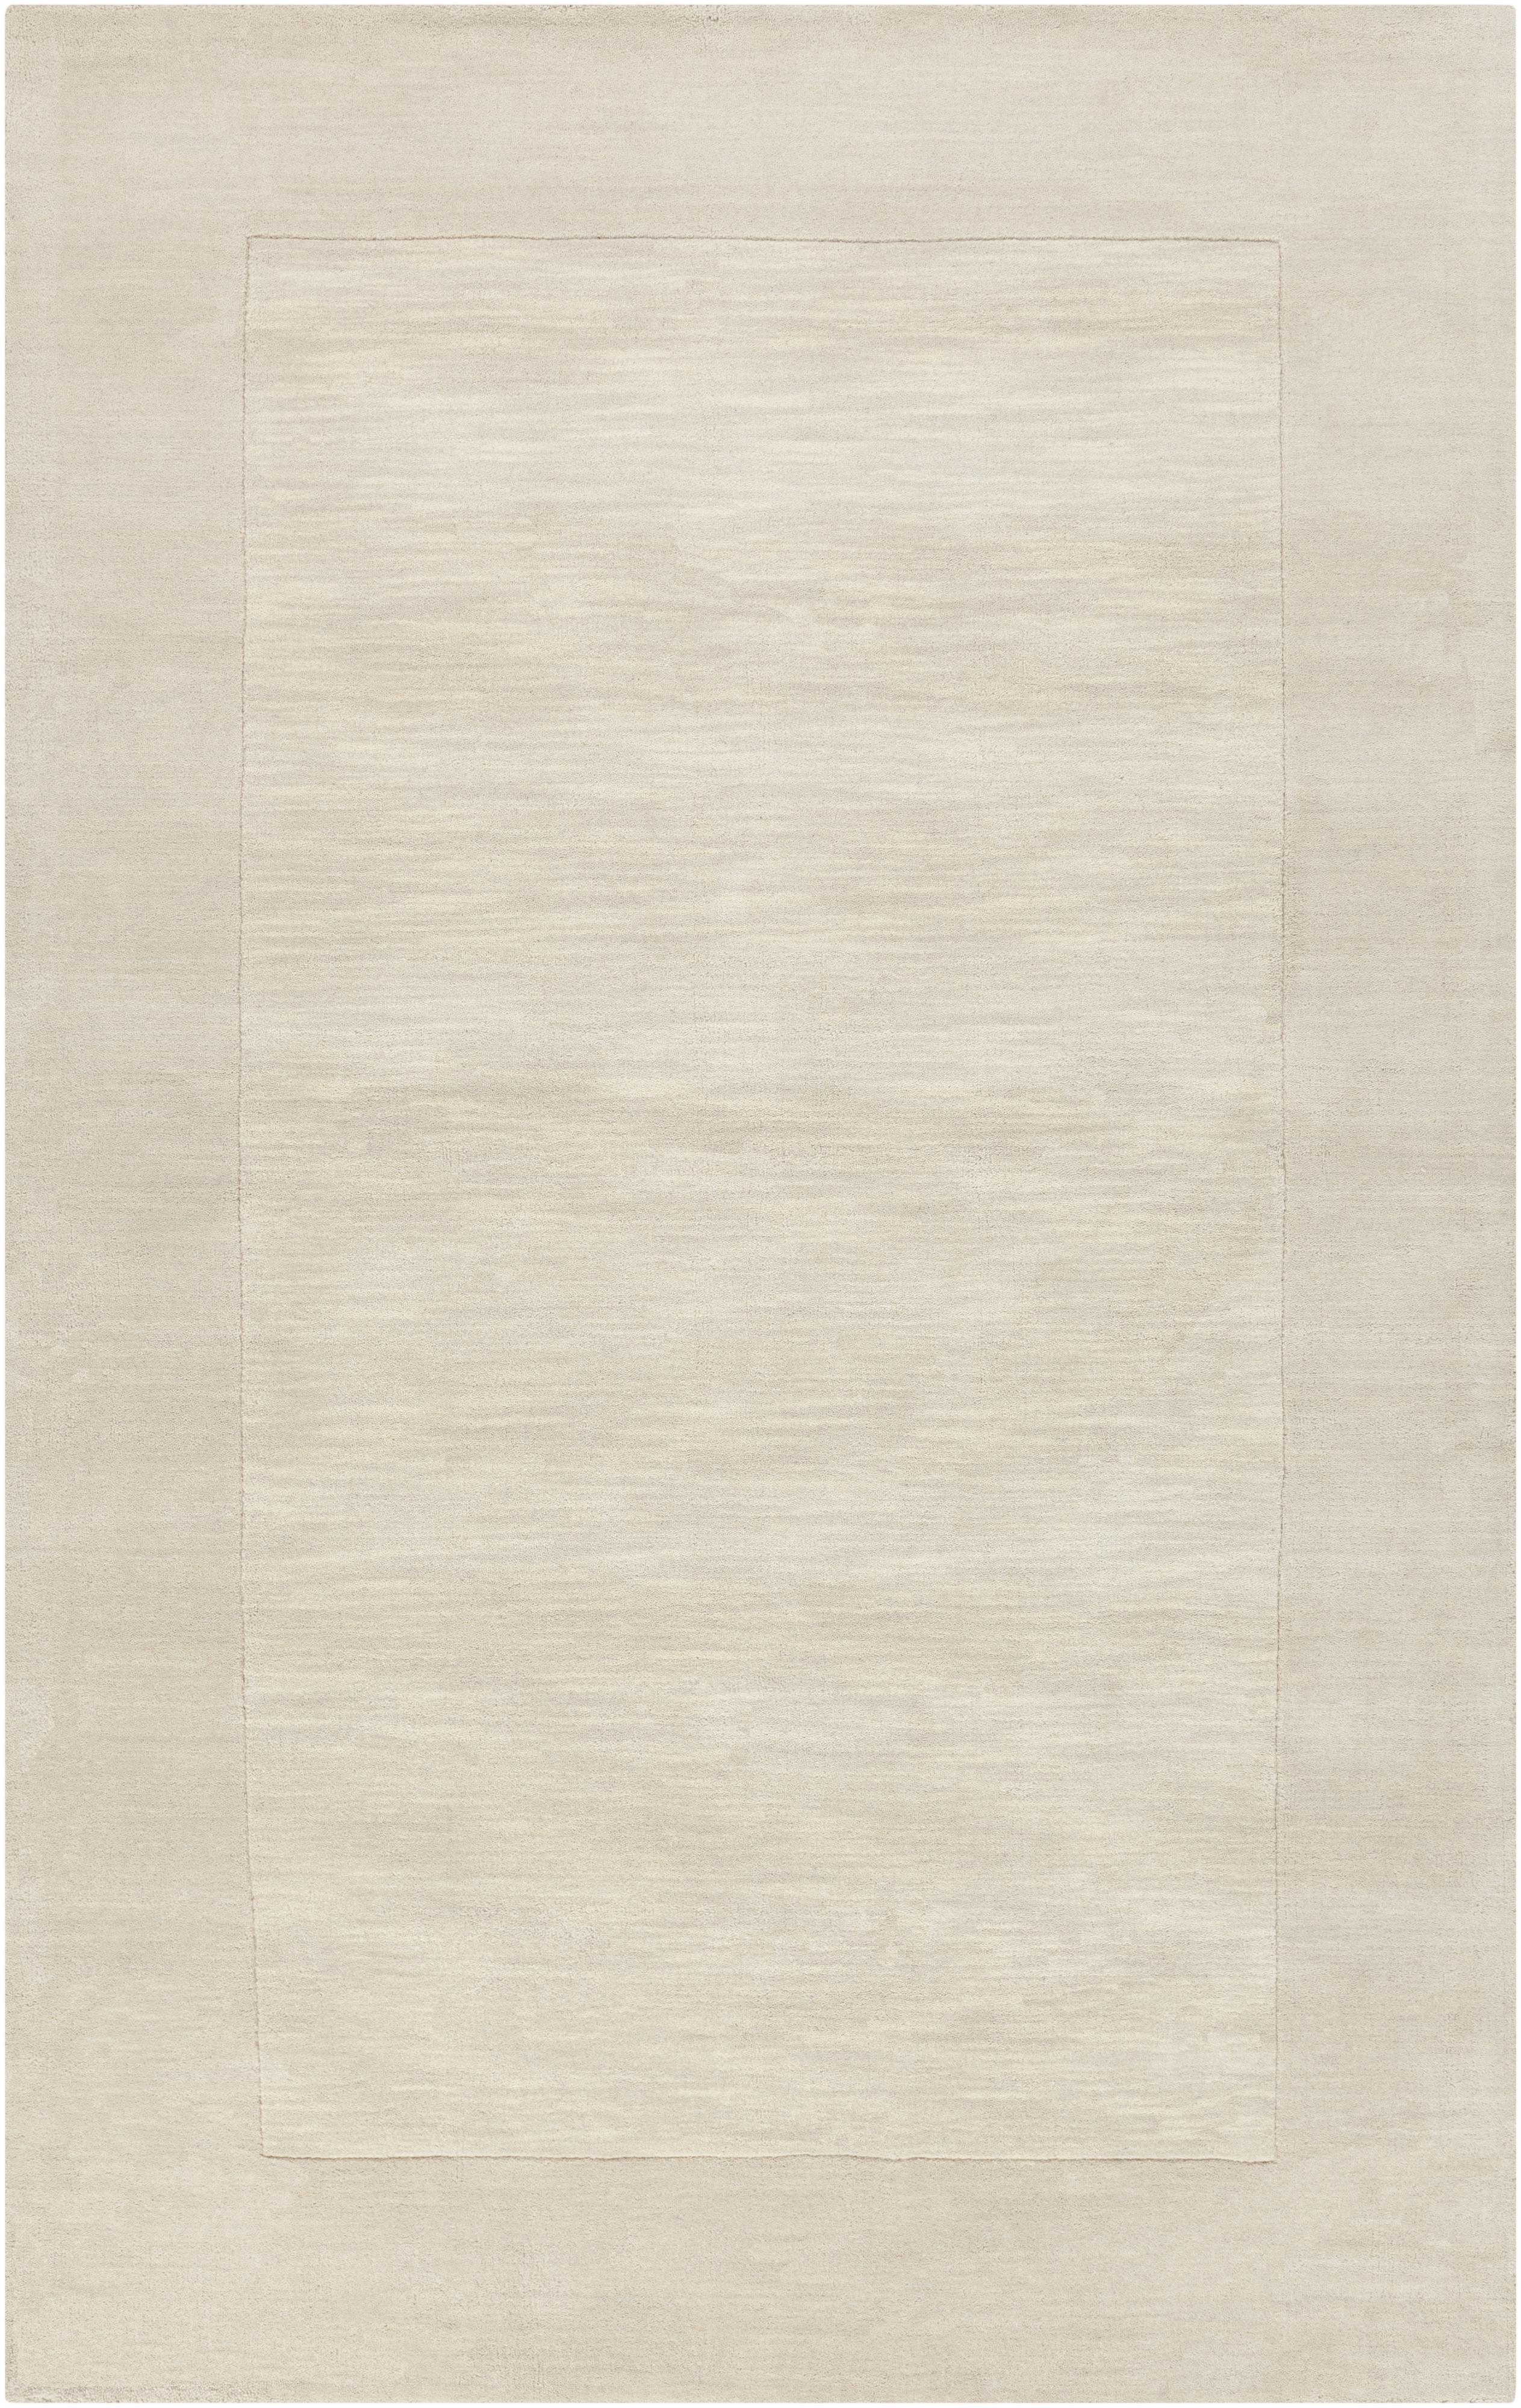 Surya Mystique 5' x 8' - Item Number: M348-58